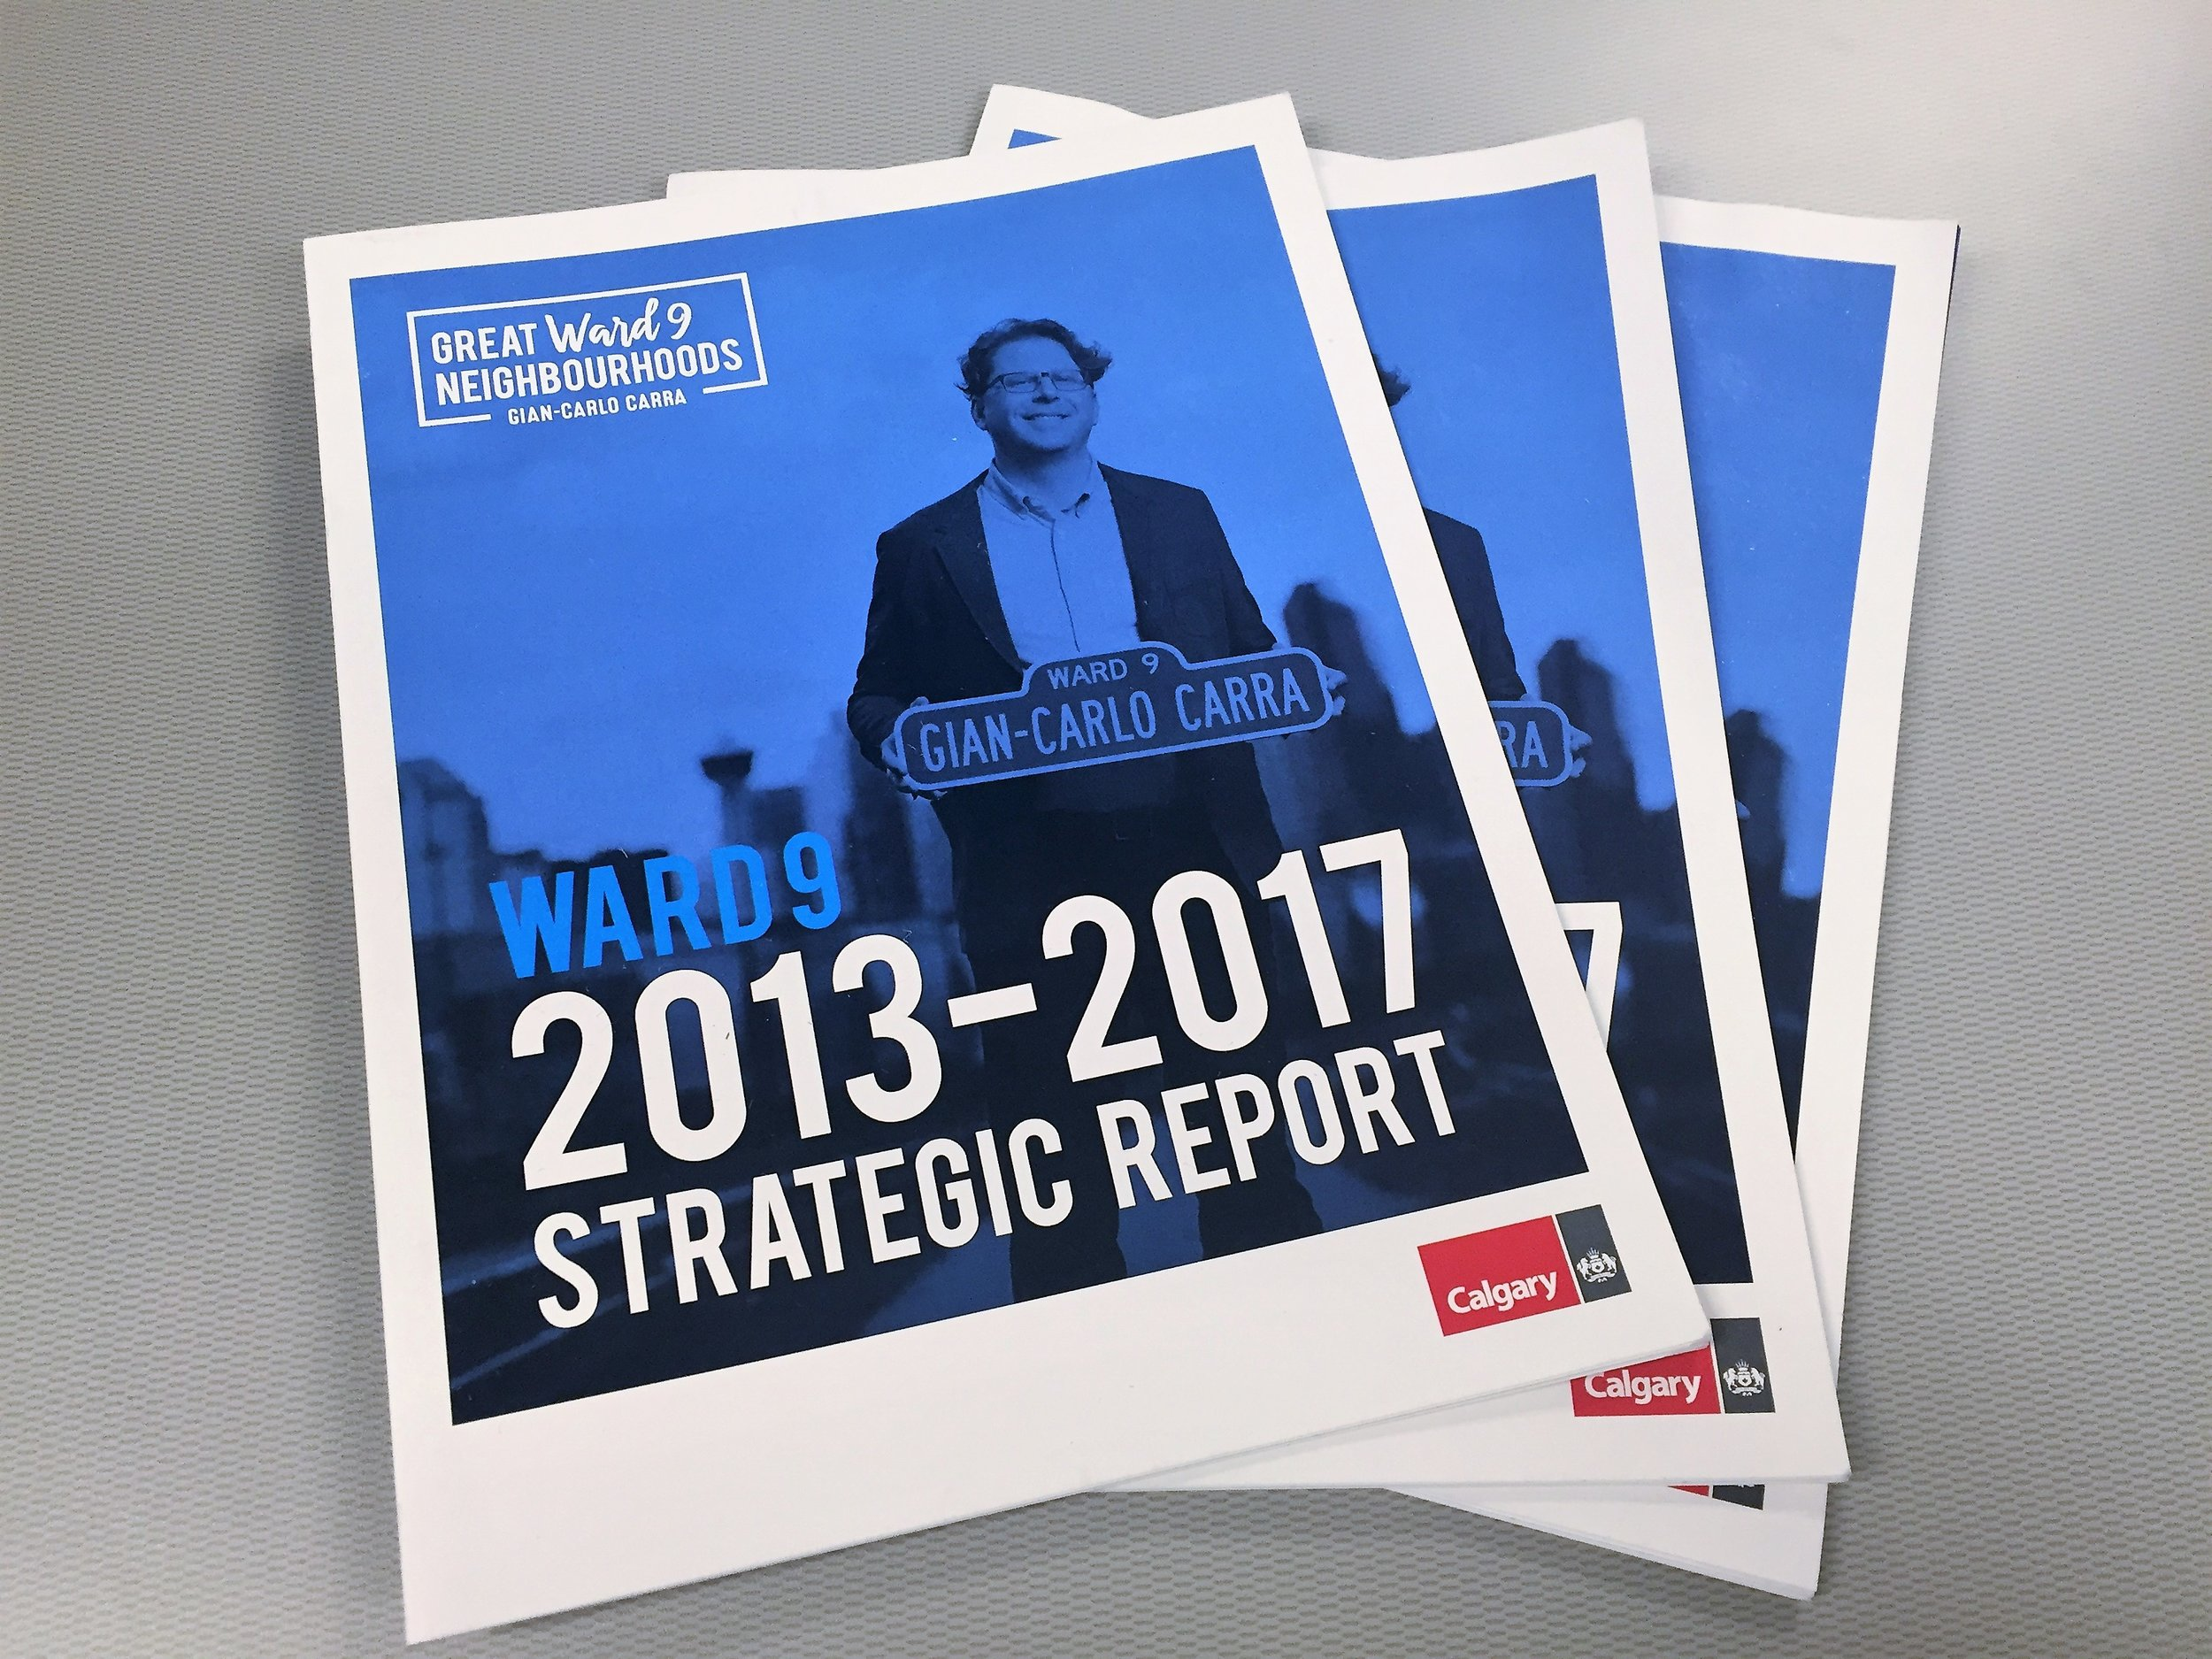 This year we'll be setting out the strategic goals, tactics,and agenda for each Ward 9 community for the next 4 years (2017-2021).